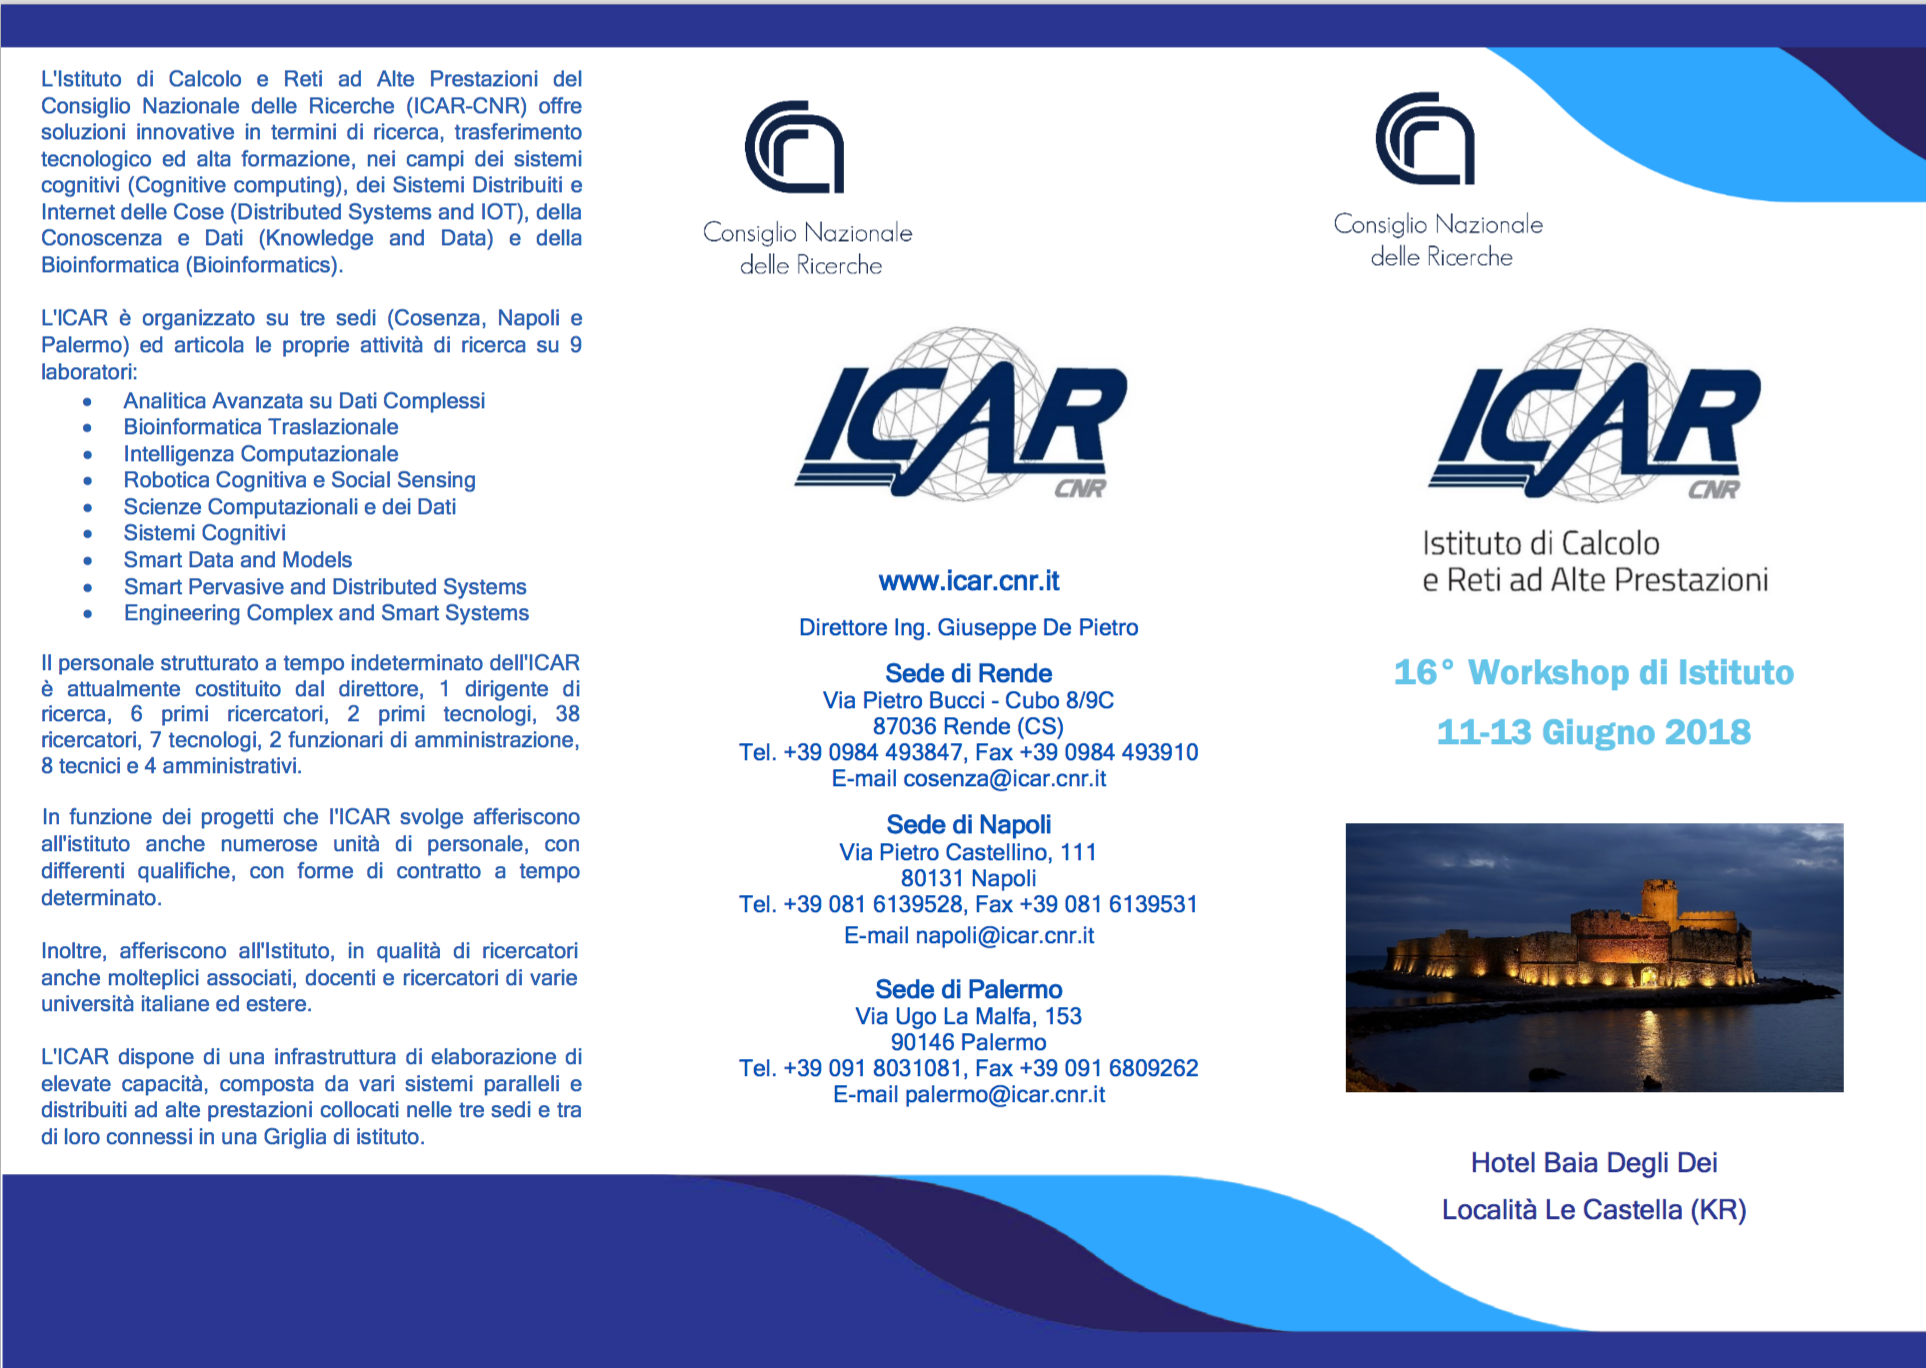 XVI WORKSHOP ICAR